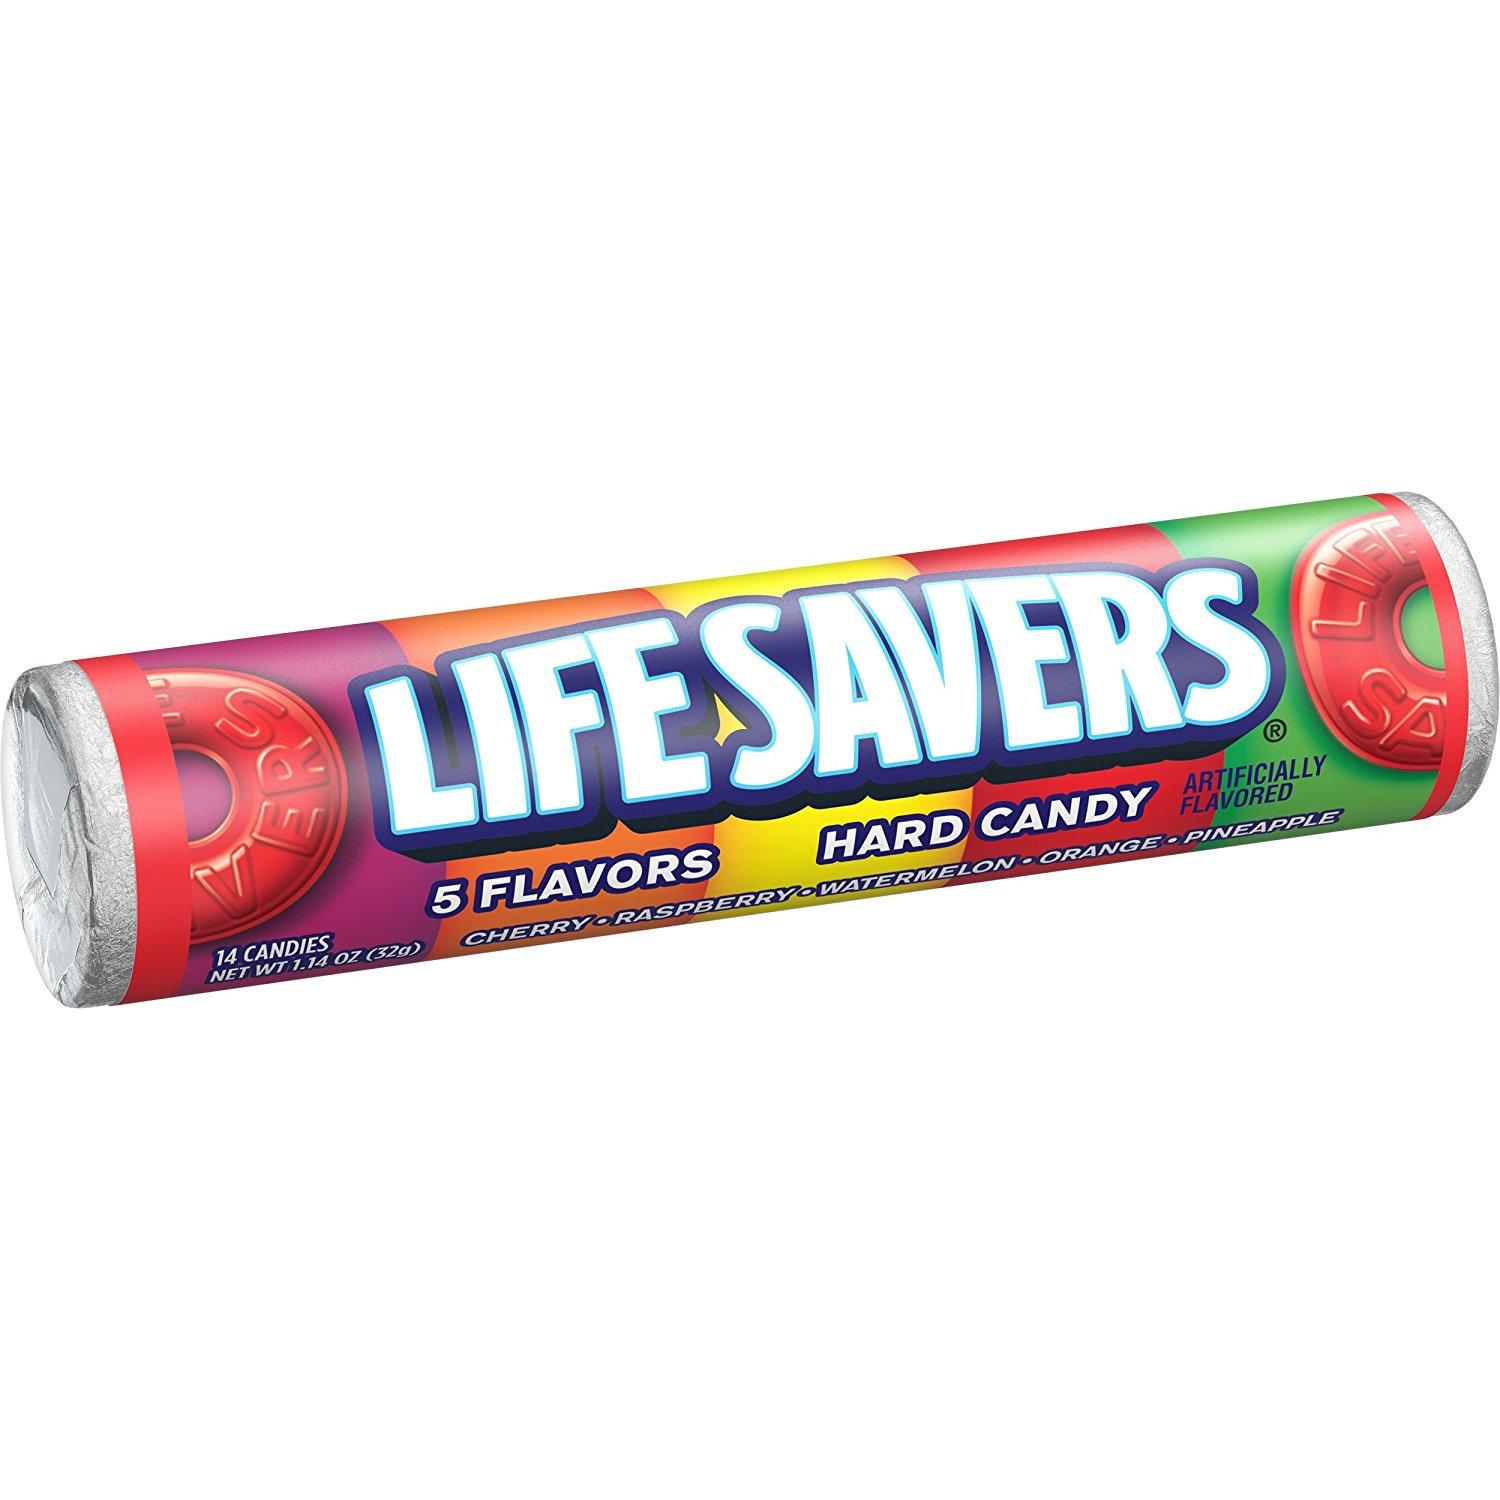 Lifesaver photo